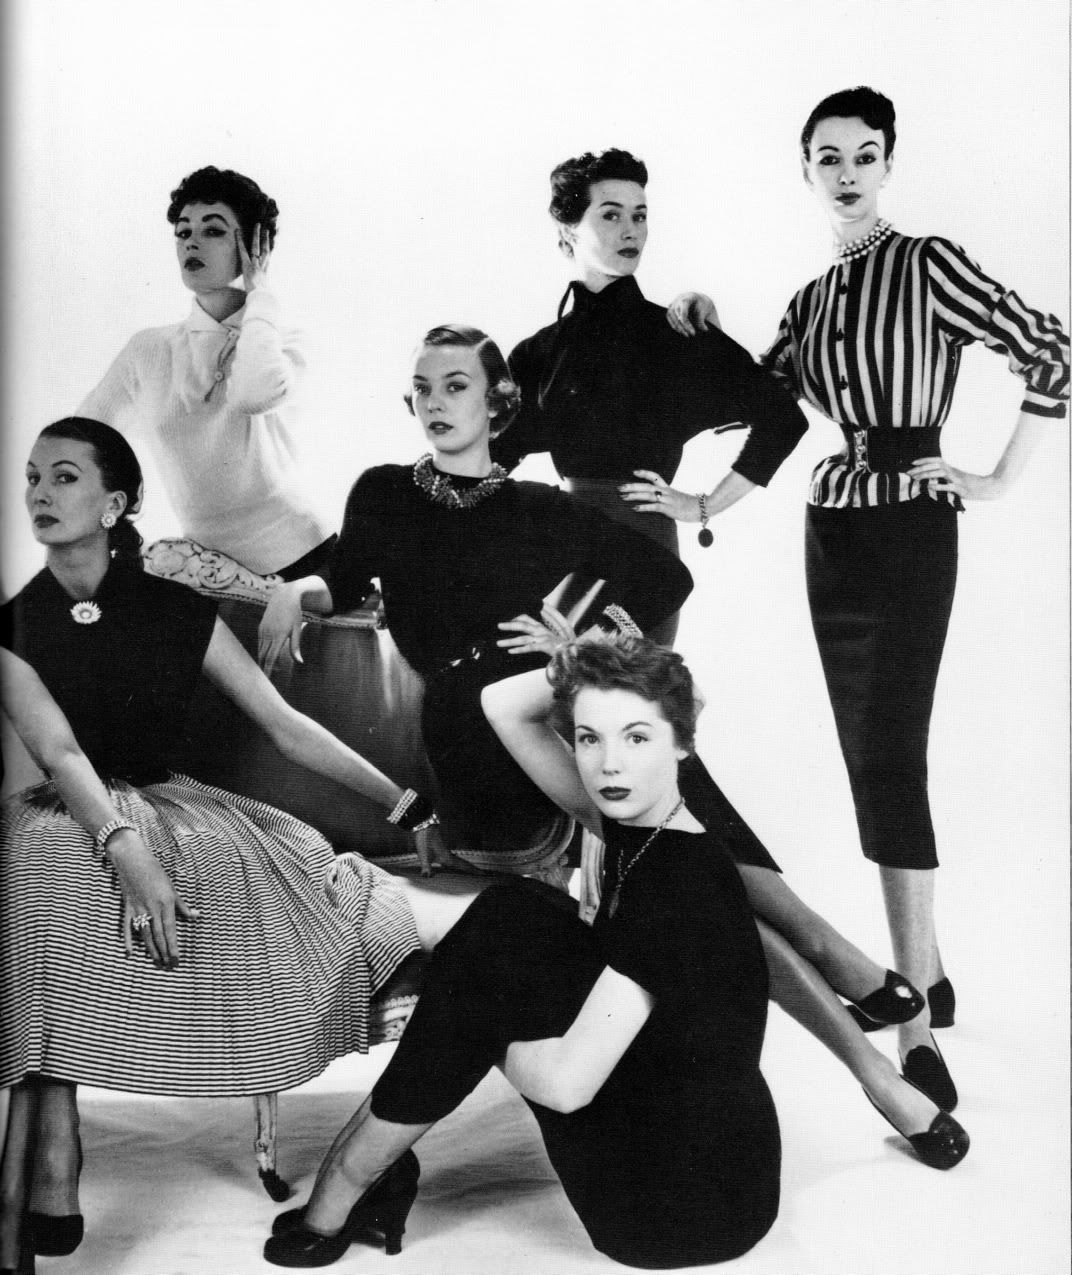 C.1950's Women's 50's fall fashion dresses photo ...